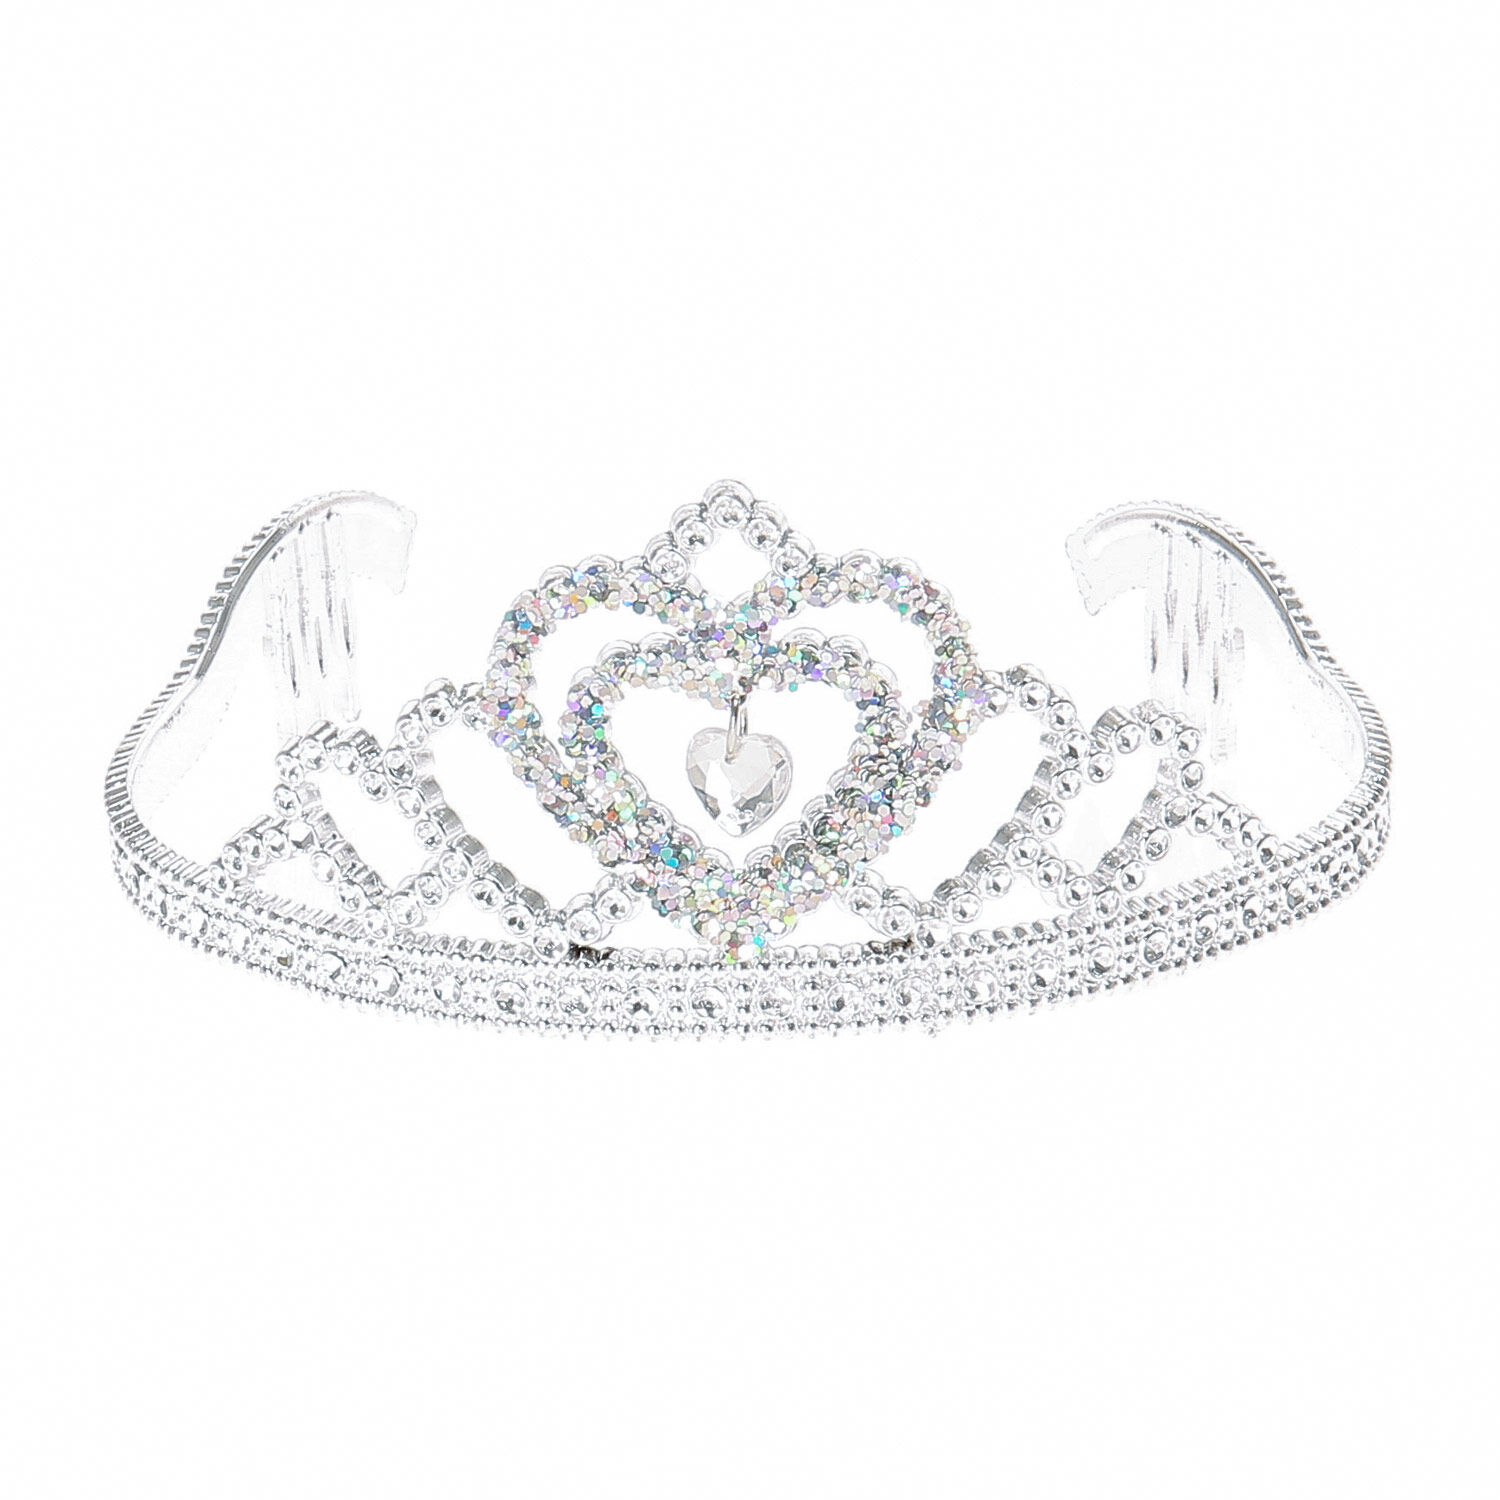 LOL Surprise doll accessories white glitter tiara